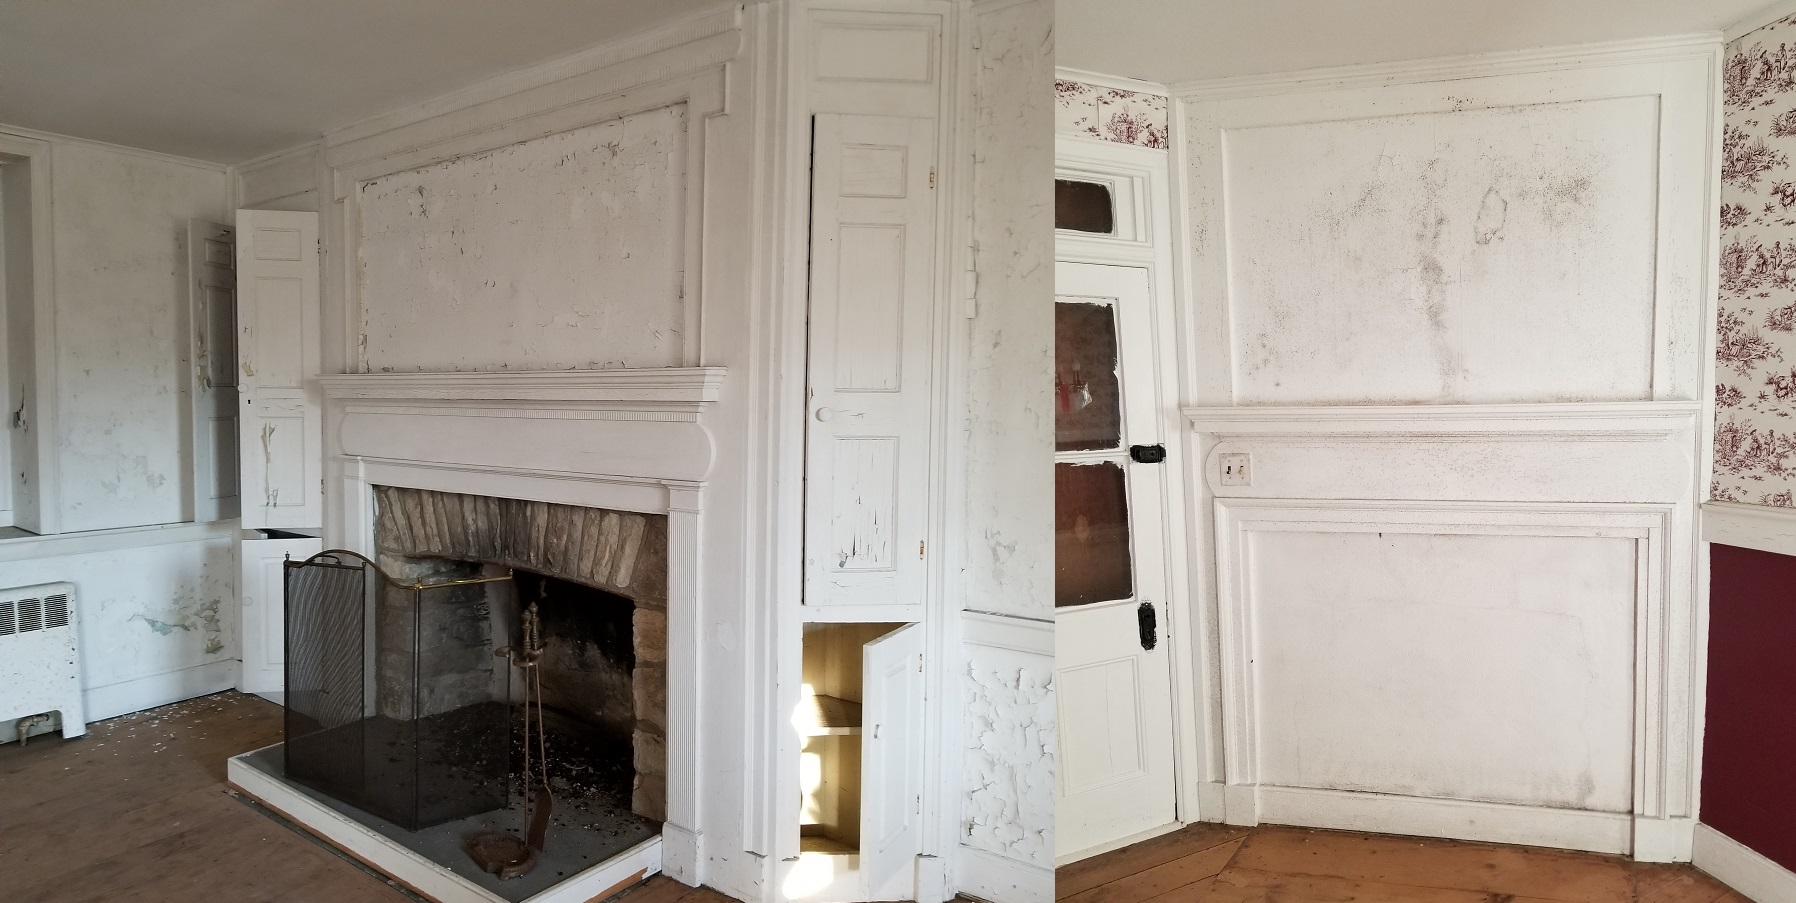 1811 Federal style fireplace; offset fireplace from 1930's or later.